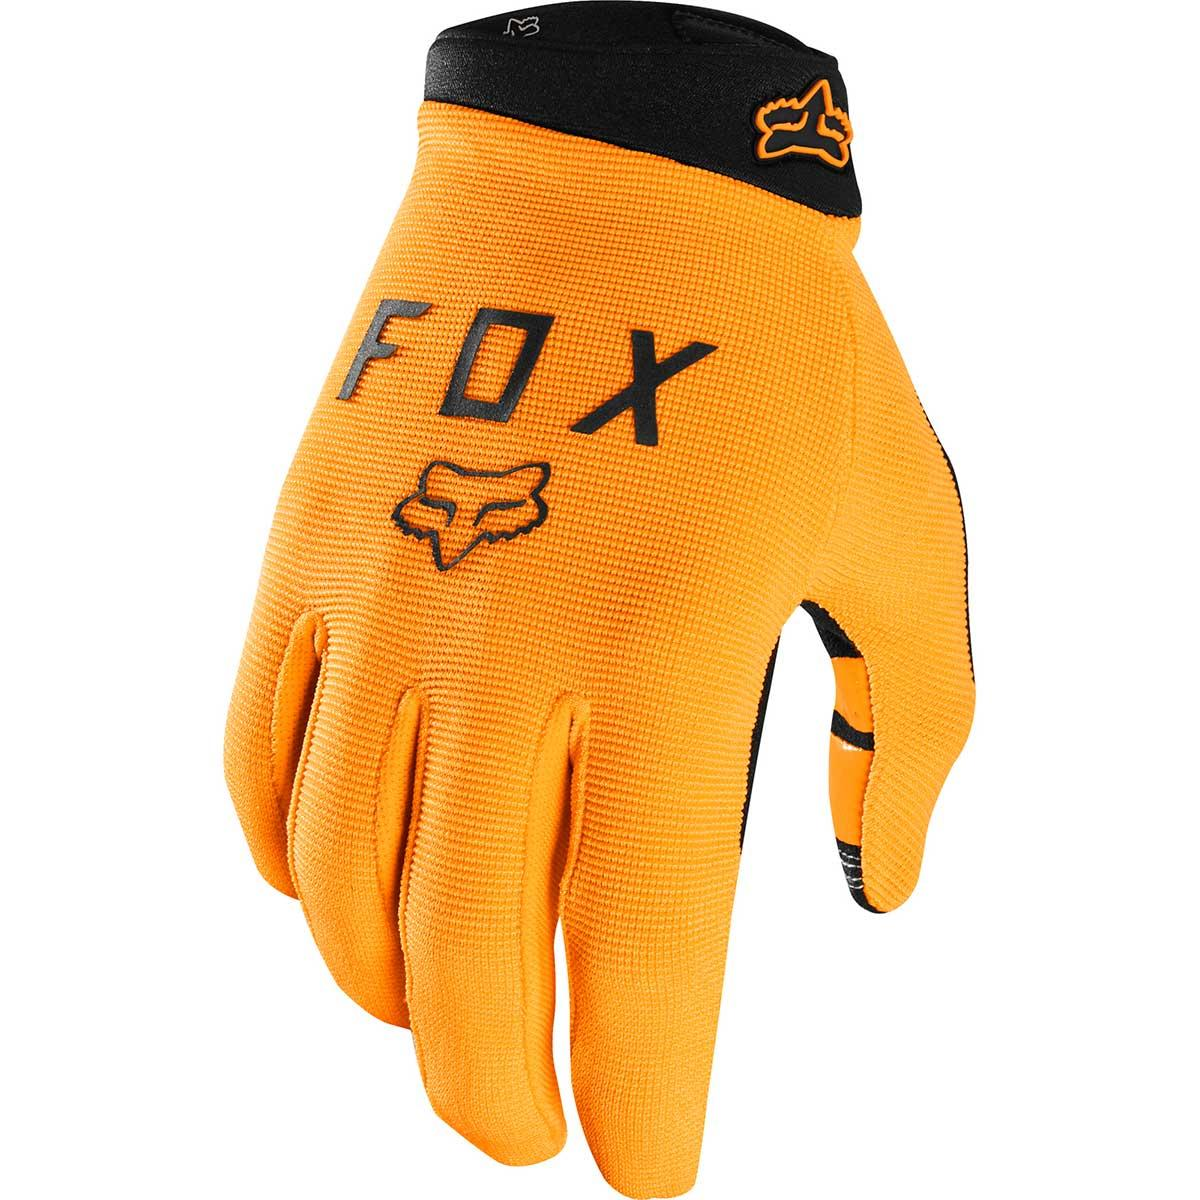 Fox kids' Youth Ranger bike glove in Atomic Orange